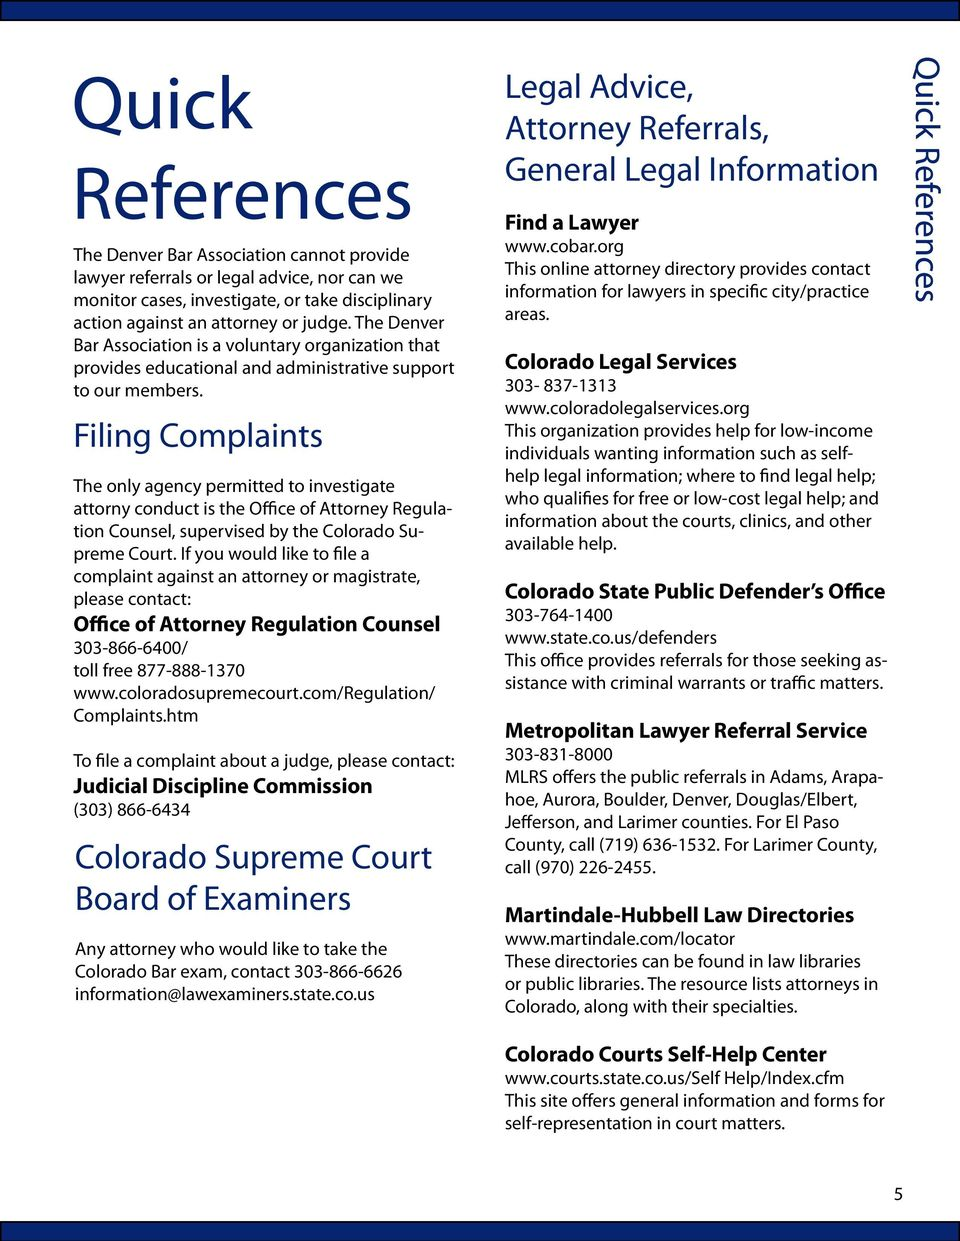 Filing Complaints The only agency permitted to investigate attorny conduct is the Office of Attorney Regulation Counsel, supervised by the Colorado Supreme Court.